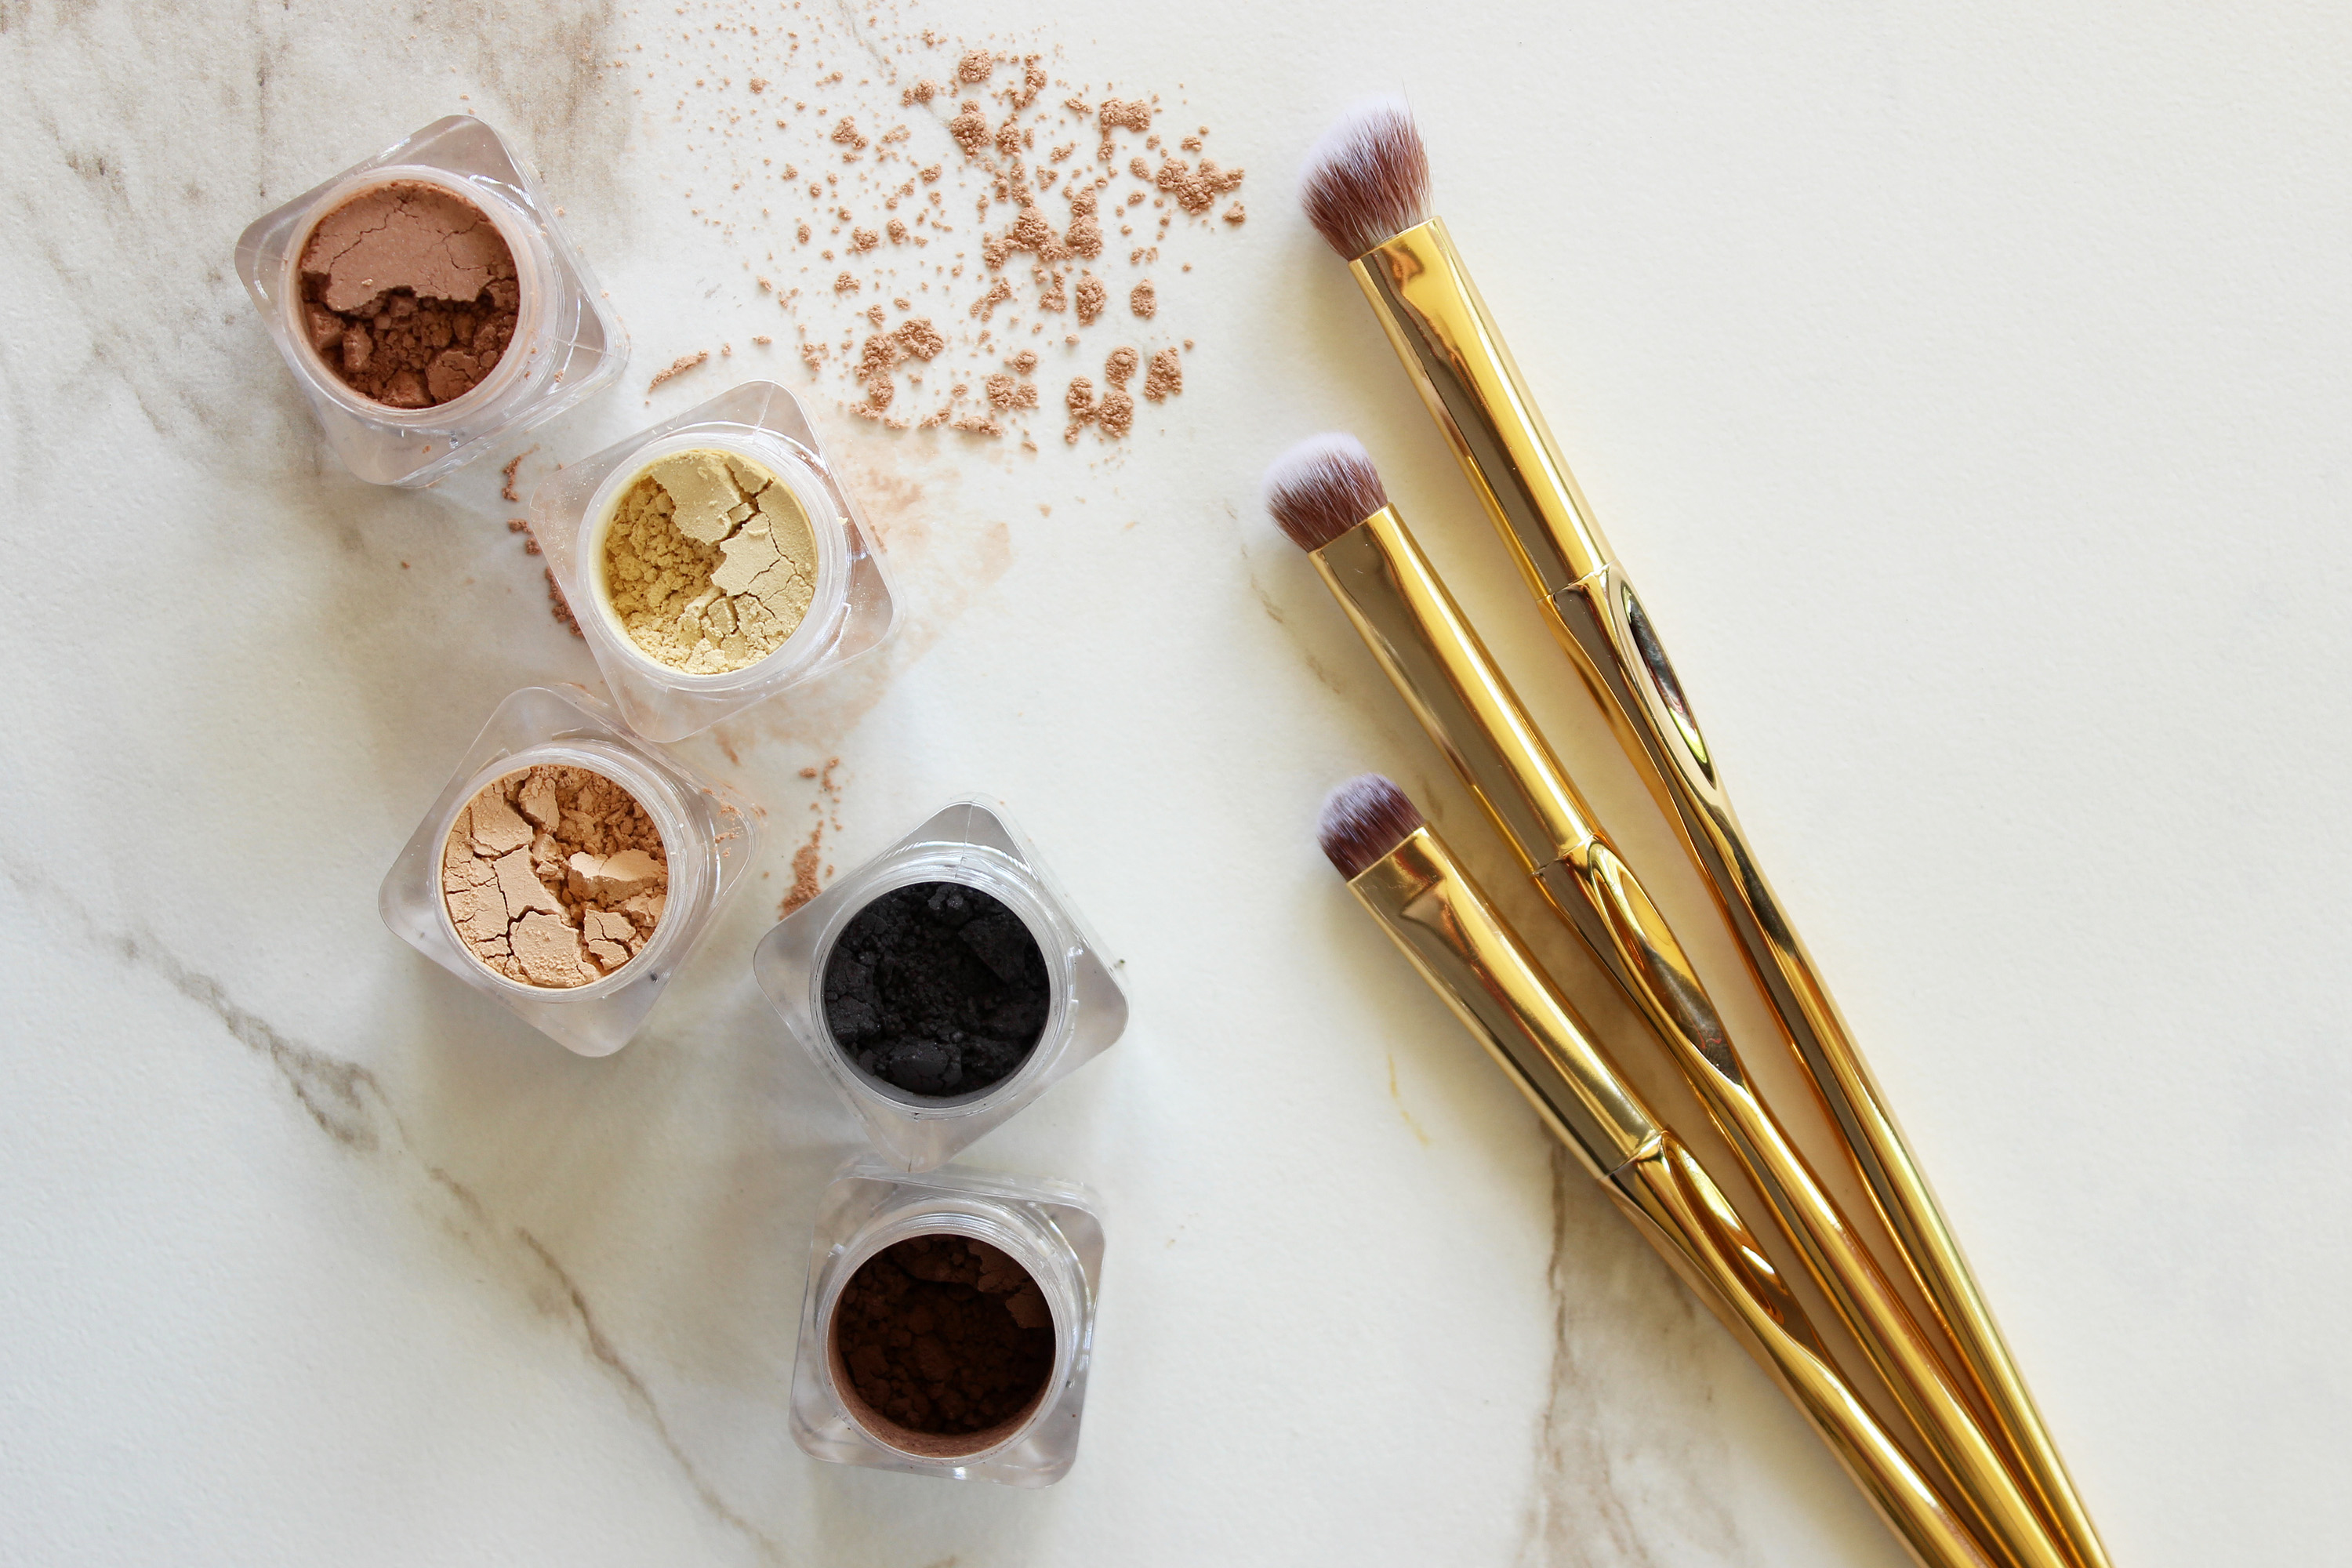 powder cosmetics and eye shadow brushes